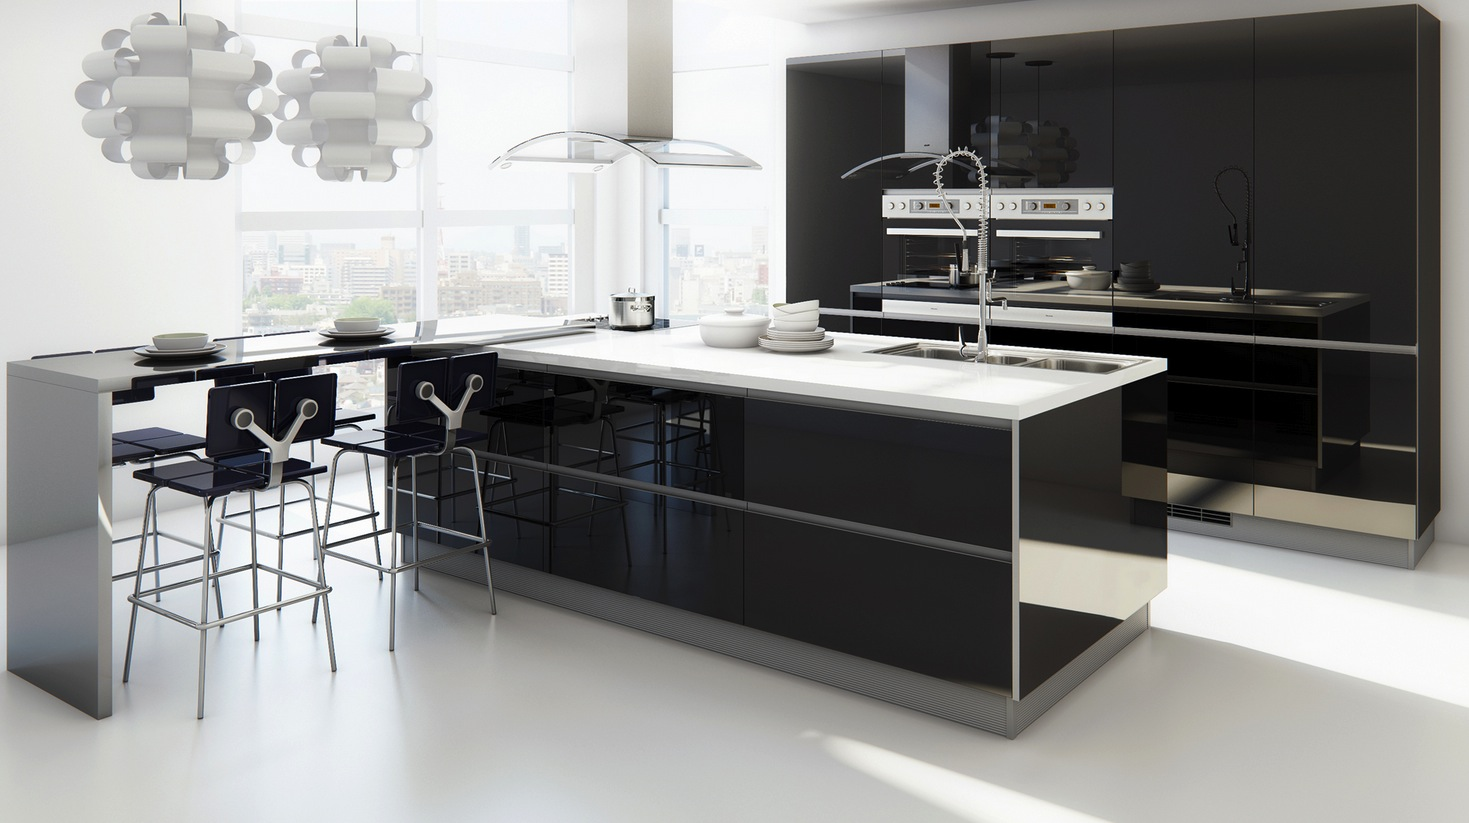 12 modern eat in kitchen designs - Cucine bianche moderne ...